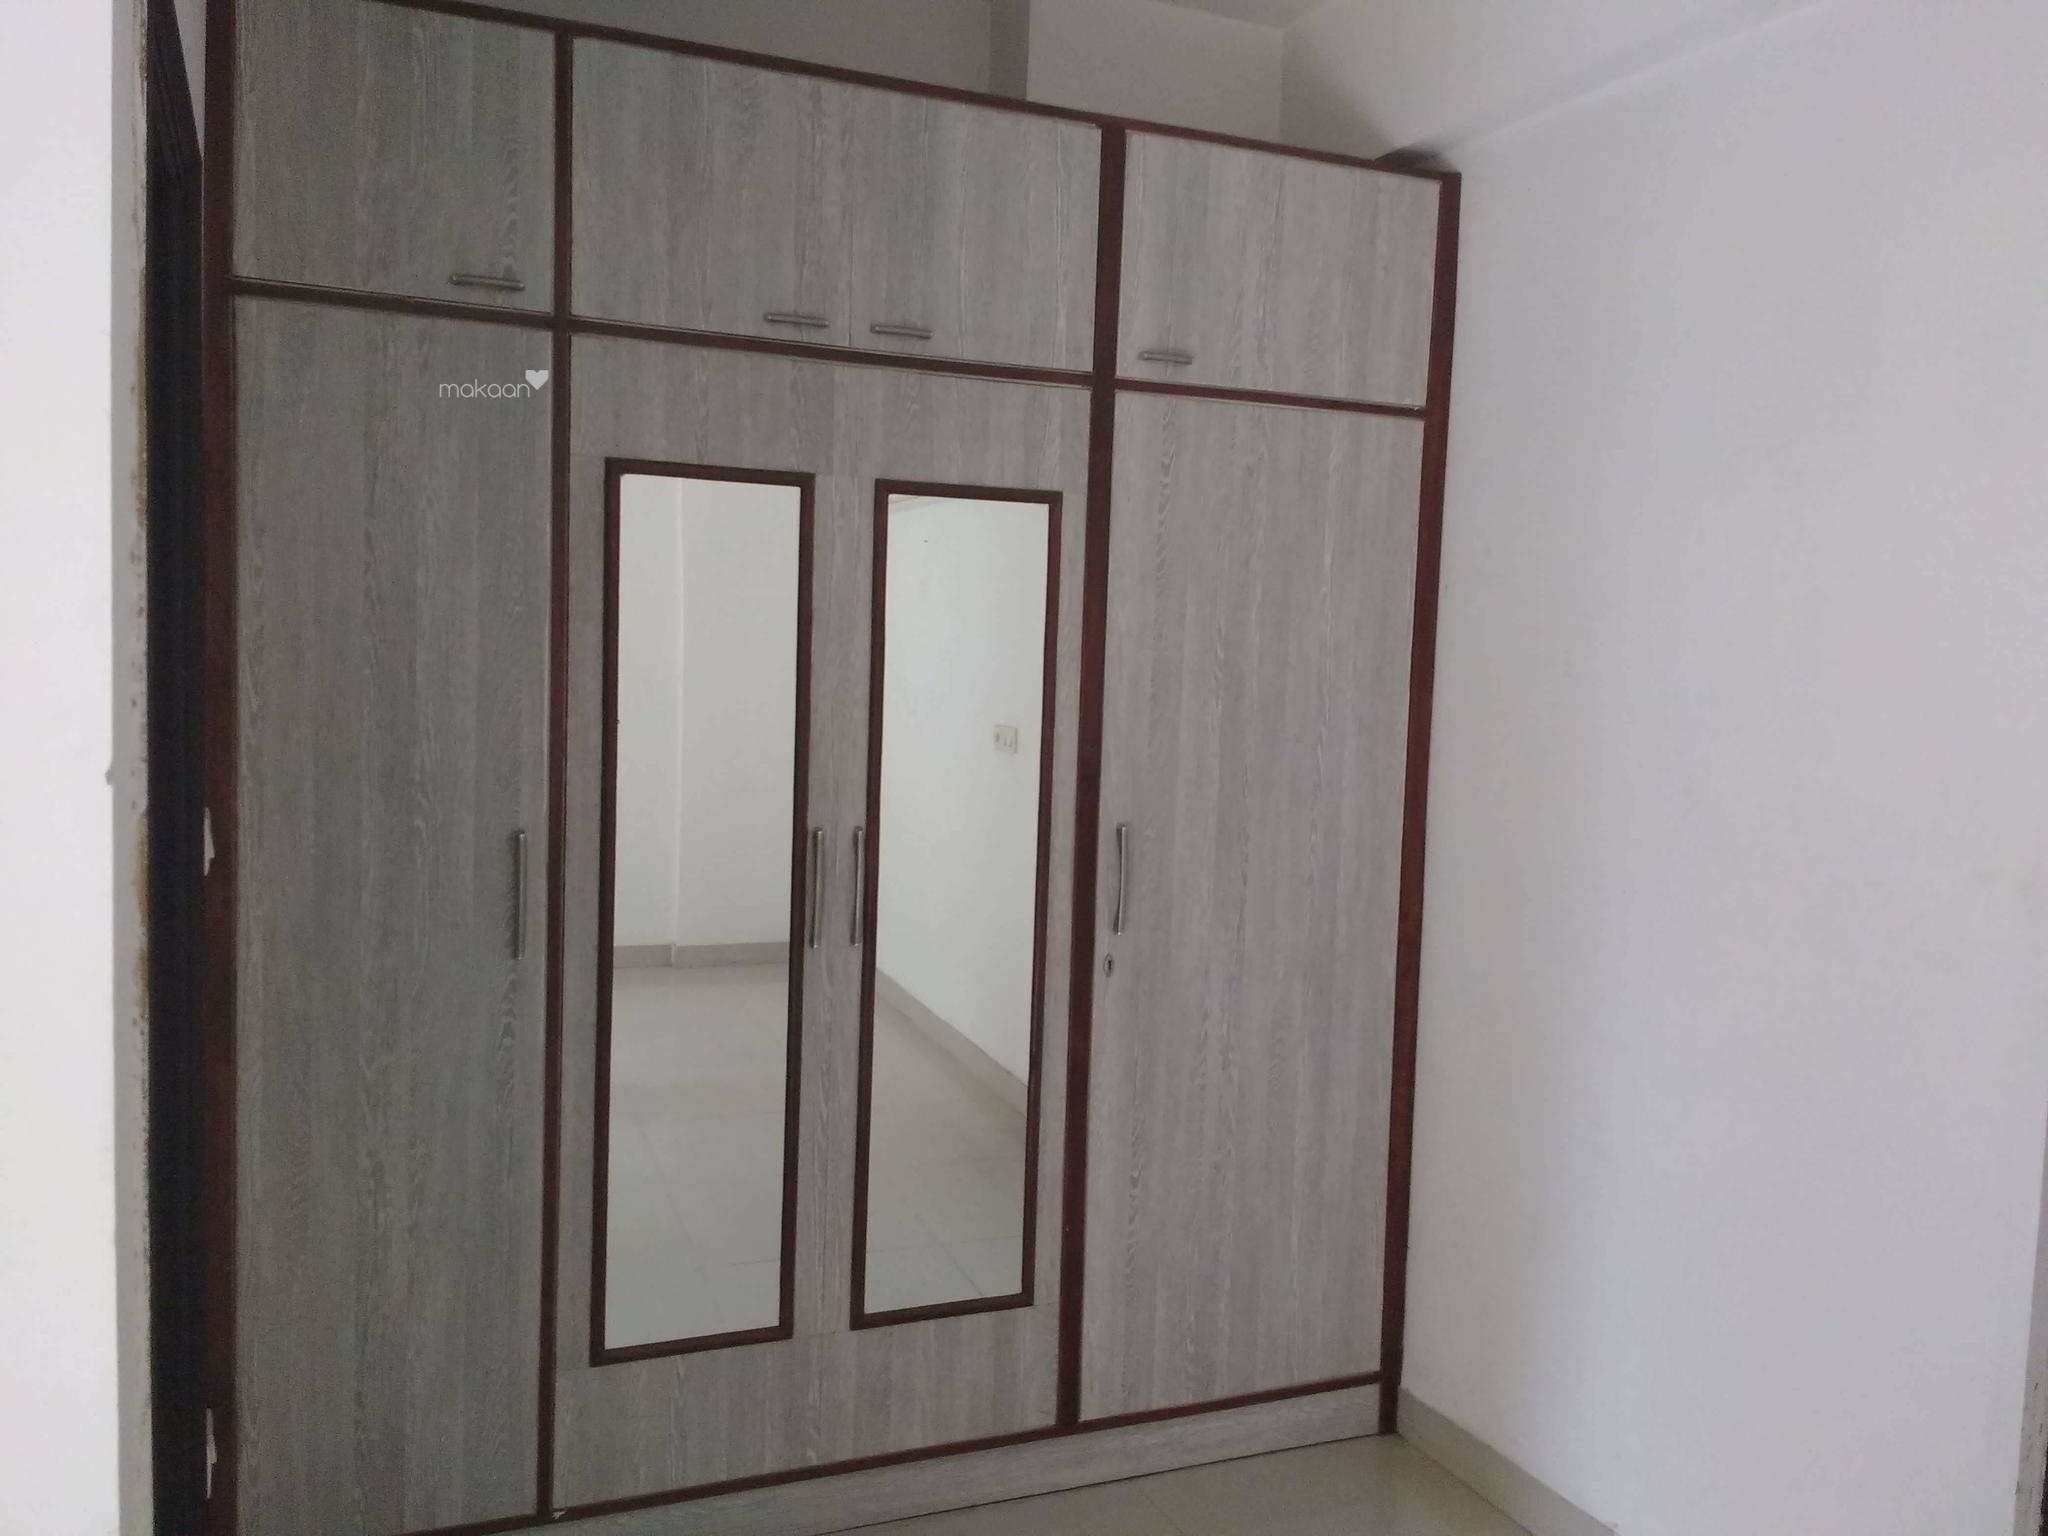 430 sq ft 2BHK 2BHK+1T (430 sq ft) + Study Room Property By ALFATECH REALTORS In sector alpha 2 greater noida, Alpha 2